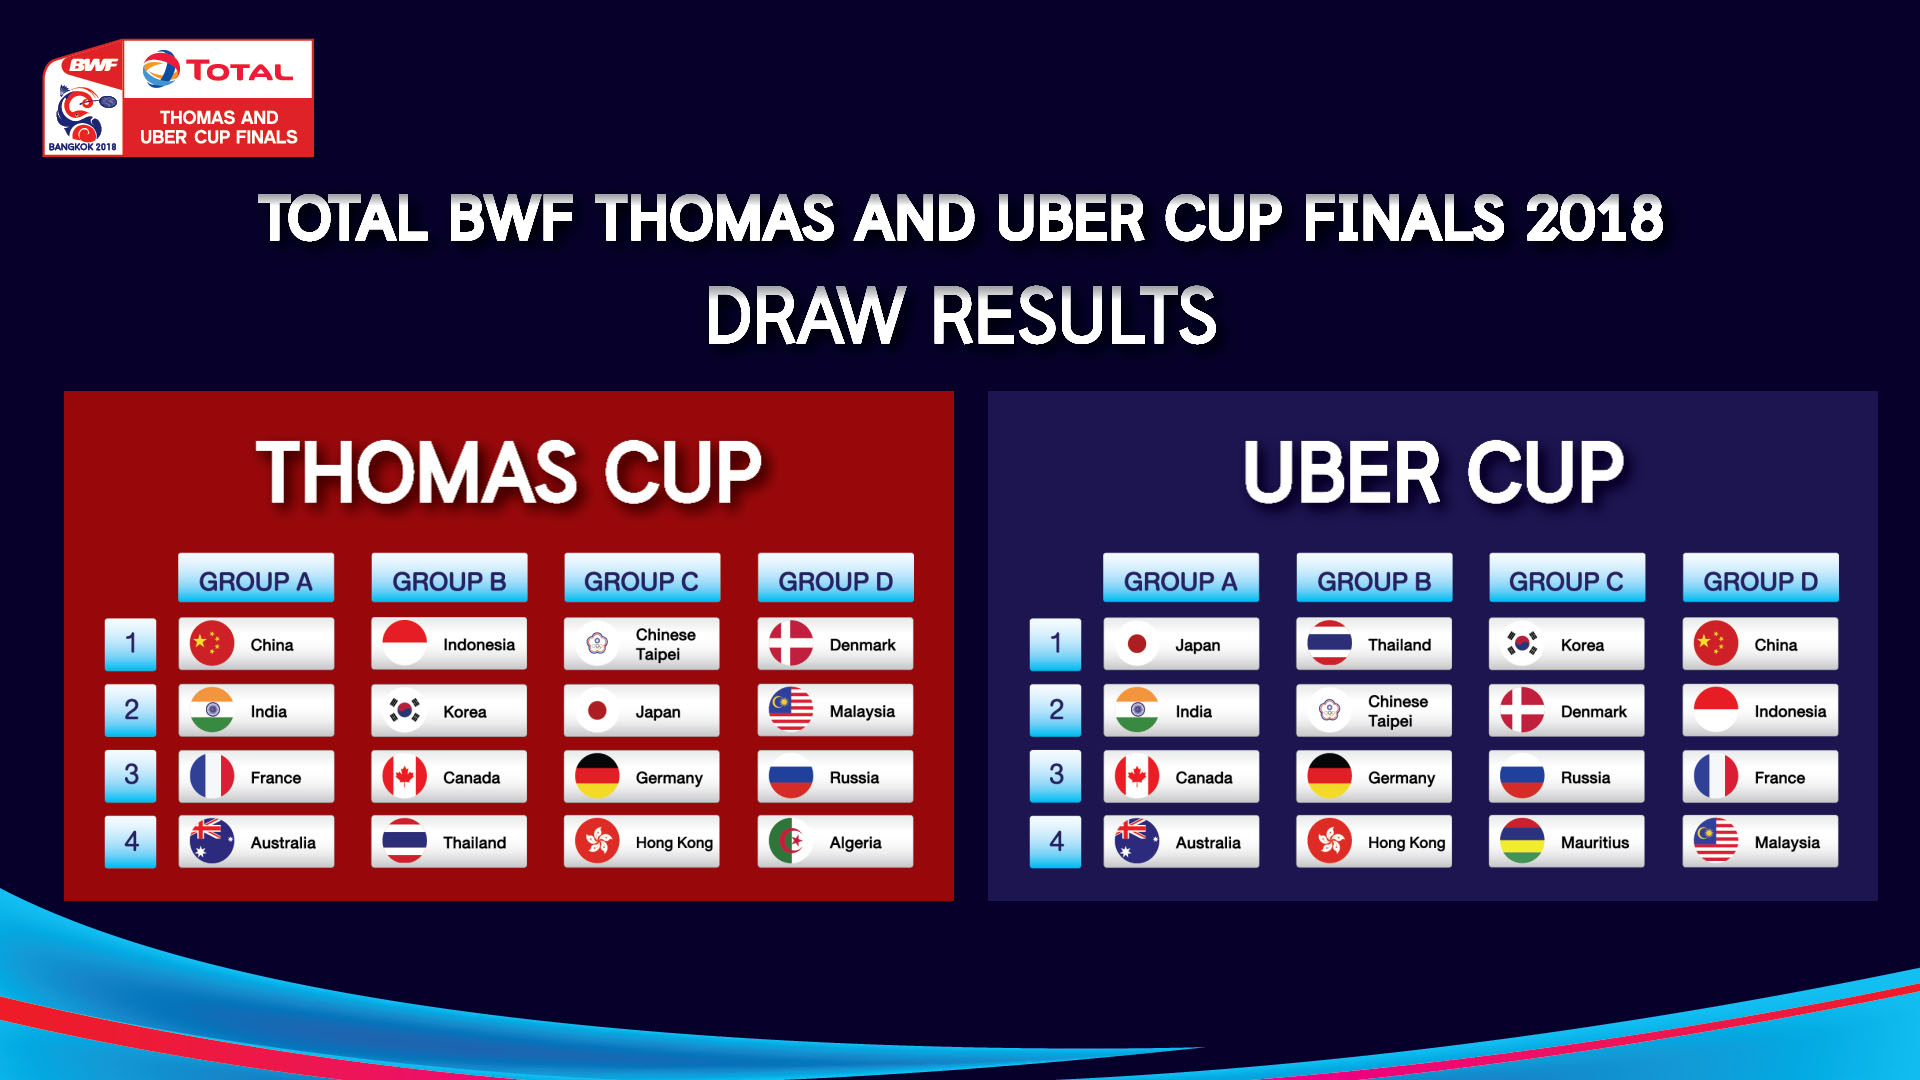 Total BWF Thamas and Uber Cup Finals 2018 Draw Results